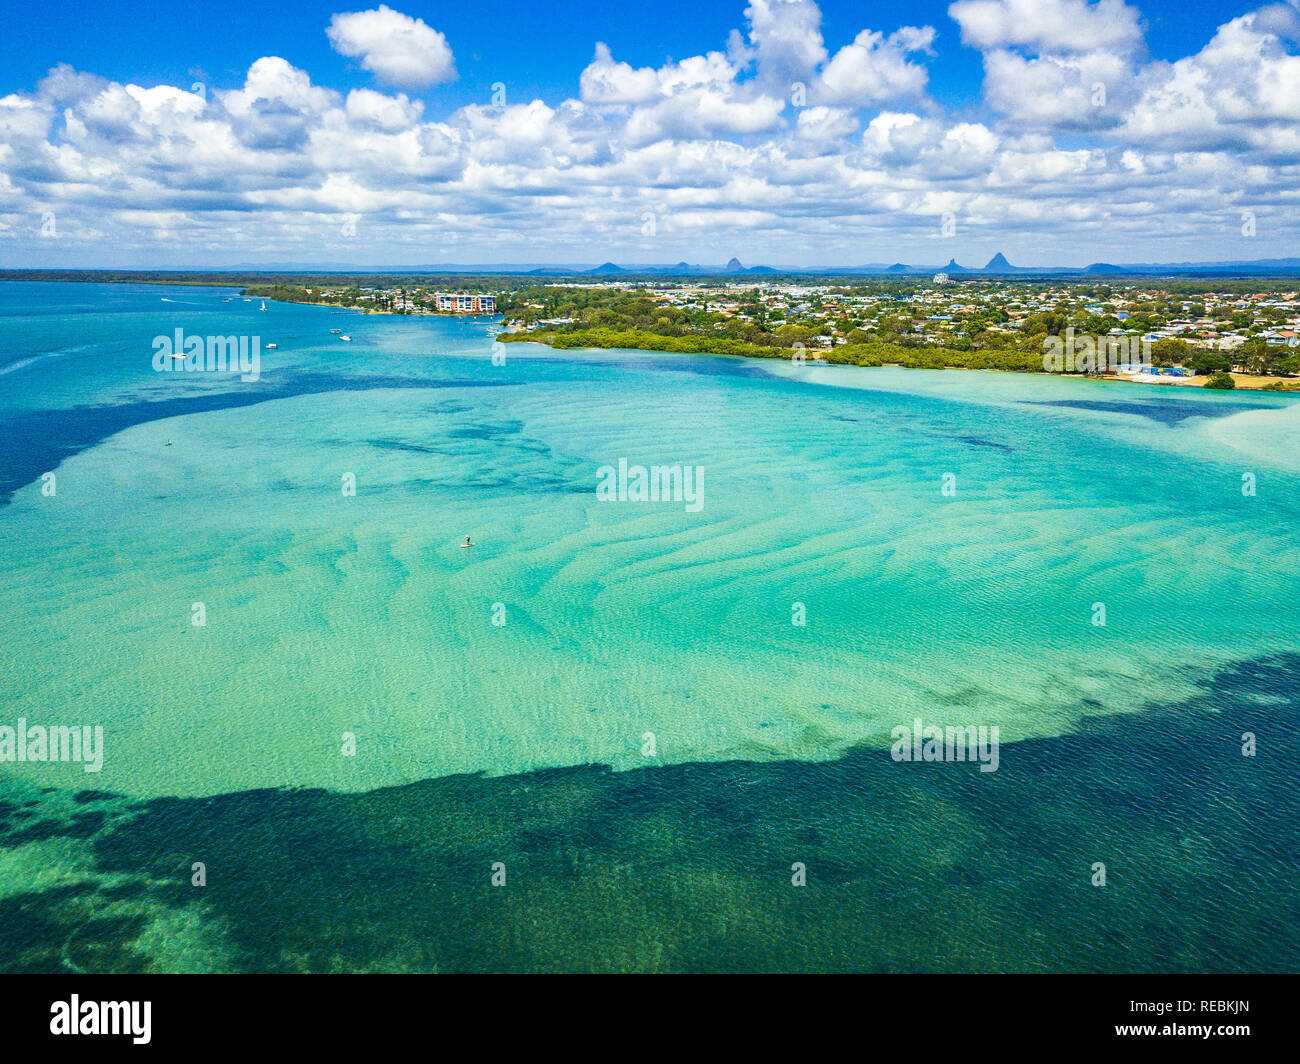 An aerial shot of the Pumicestone Channel, Golden Beach and the Glasshouse Mountains in the distance. QLD, Australia. - Stock Image